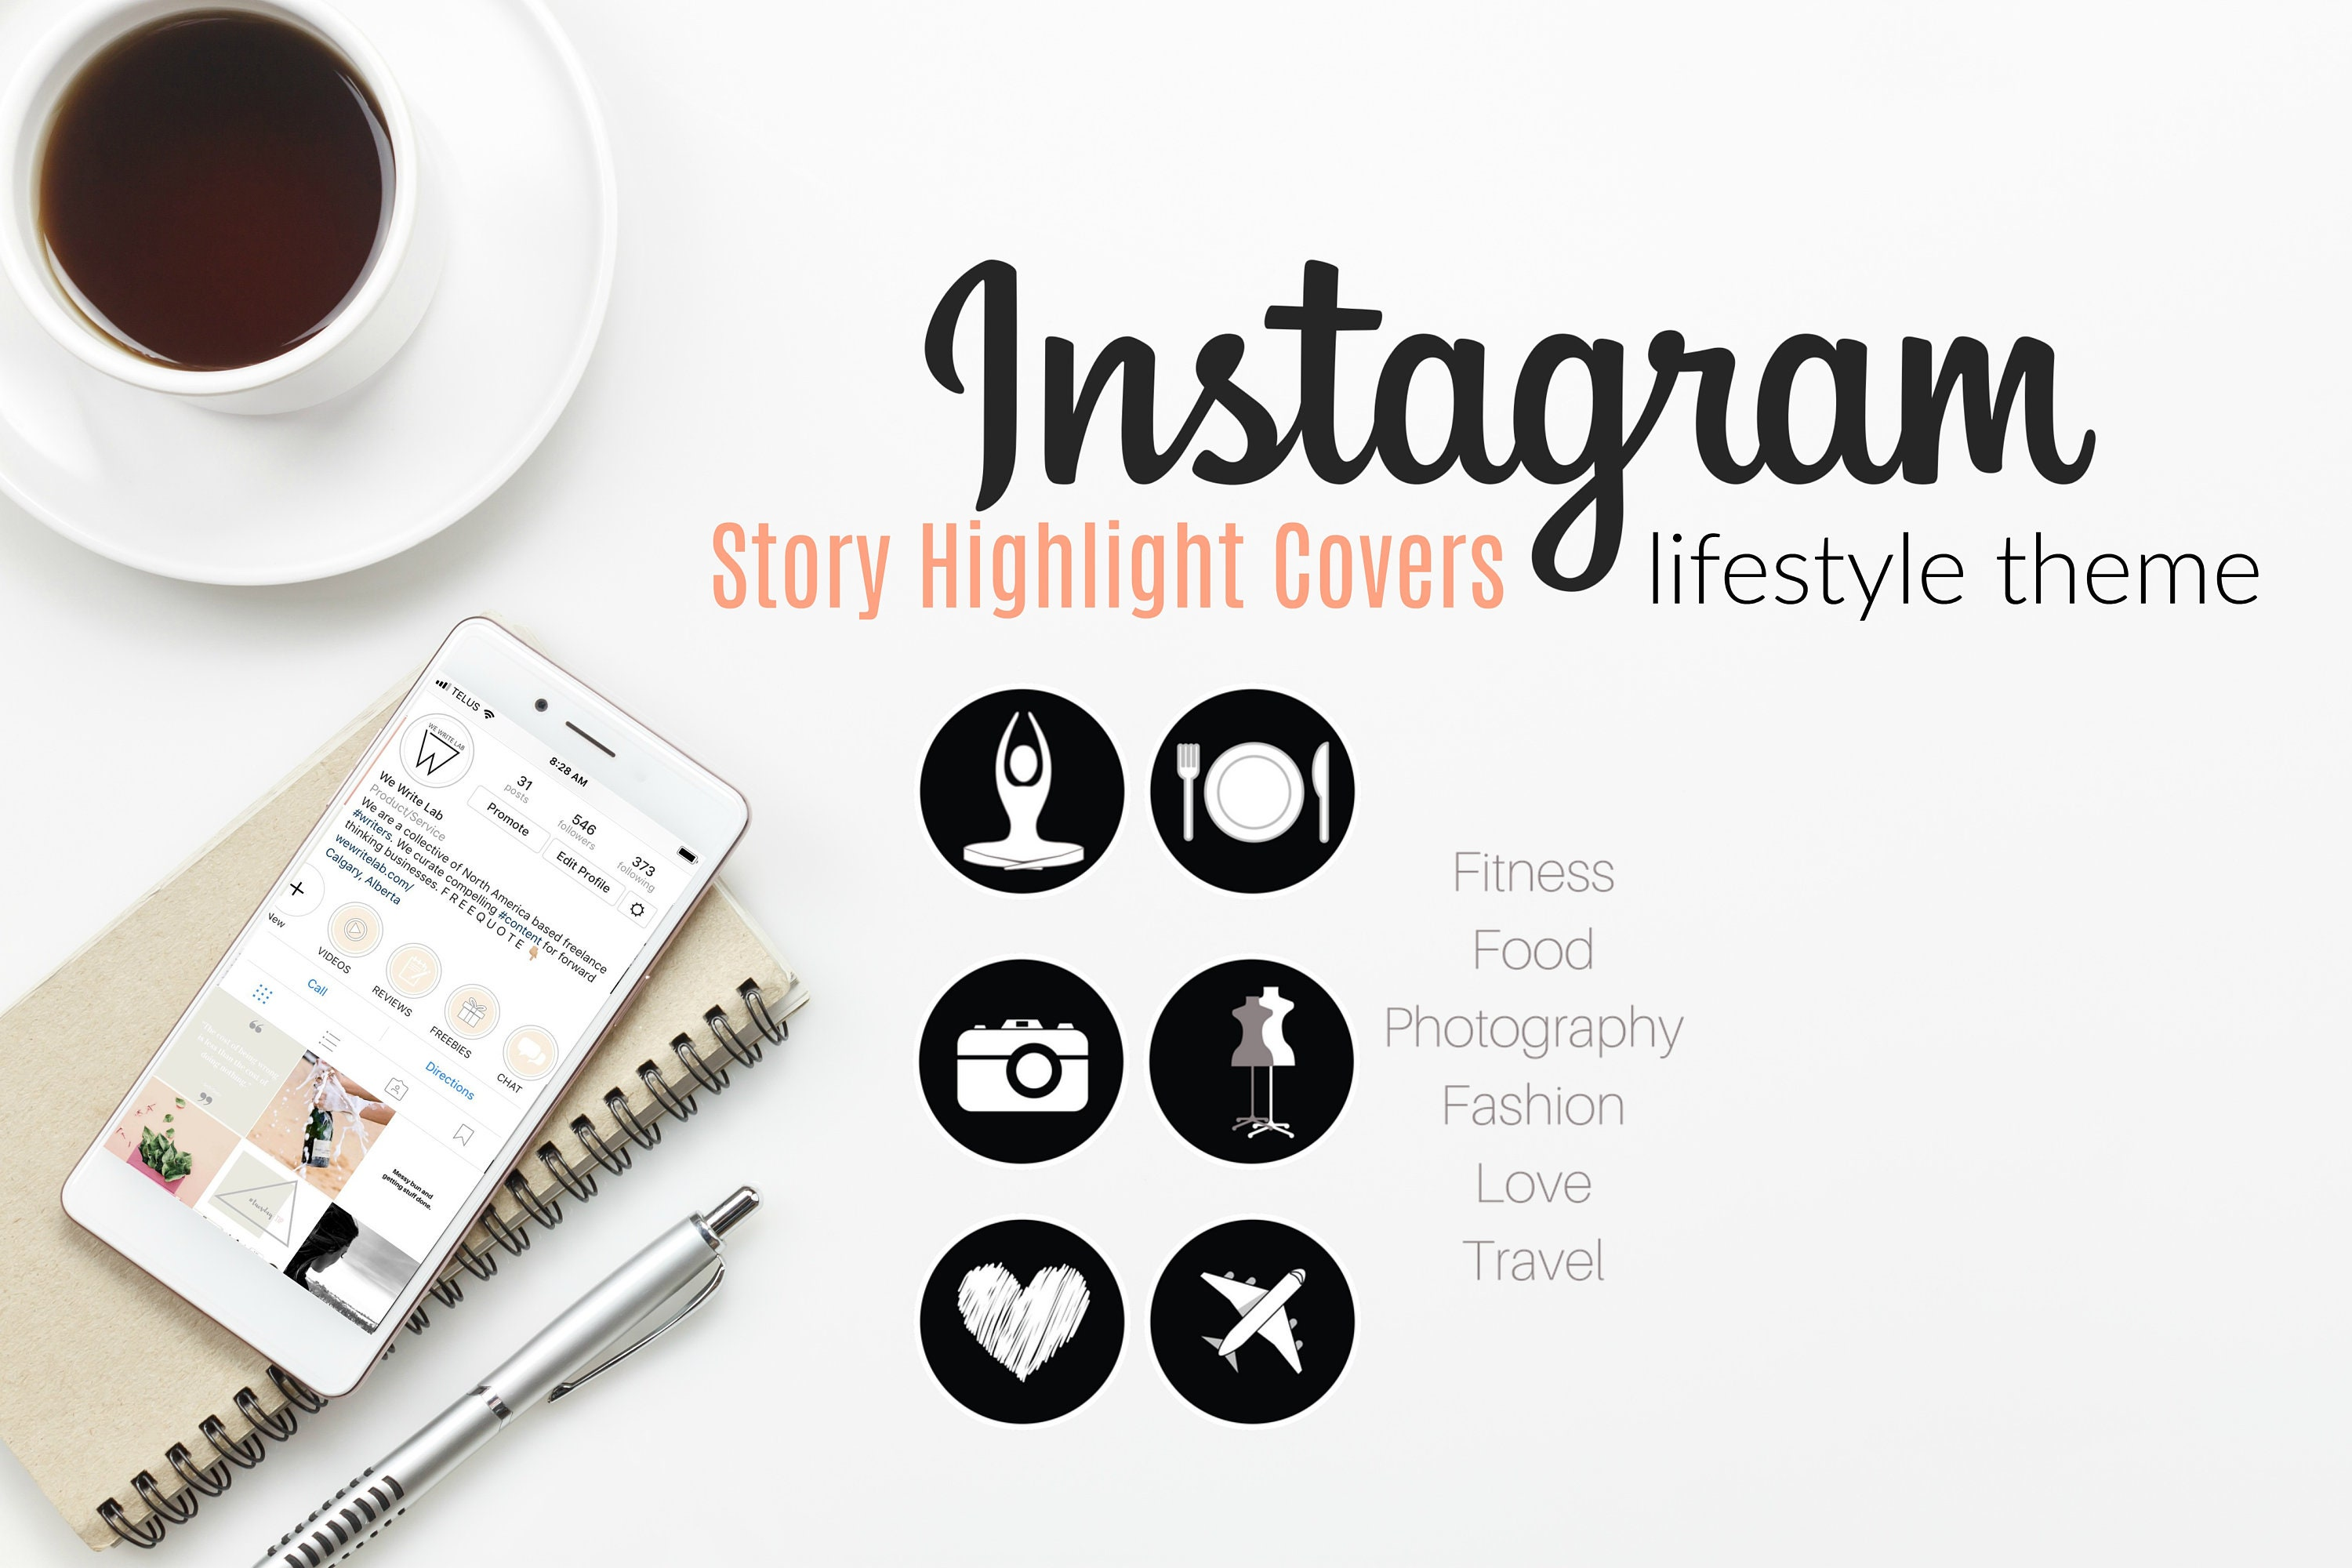 Instagram Story Highlight Icons Cover Pack: Black & White, Lifestyle Theme  for Instagram Stories